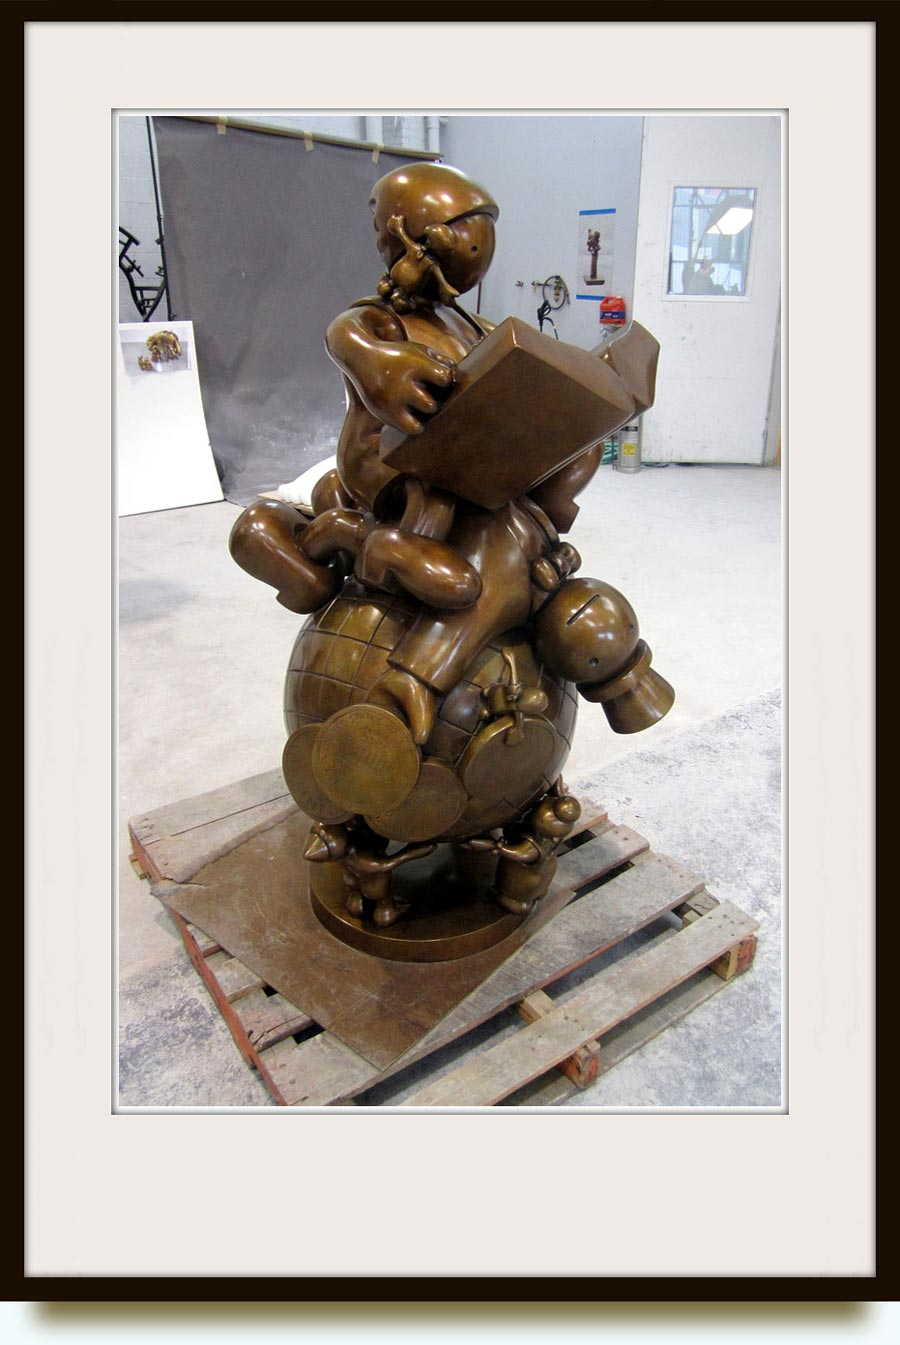 Tom Otterness (b. 1952 in Wichita, Kansas, US). The Lesson. 2010. Bronze. Tom Otterness Studio, Open House New York (OHNY).